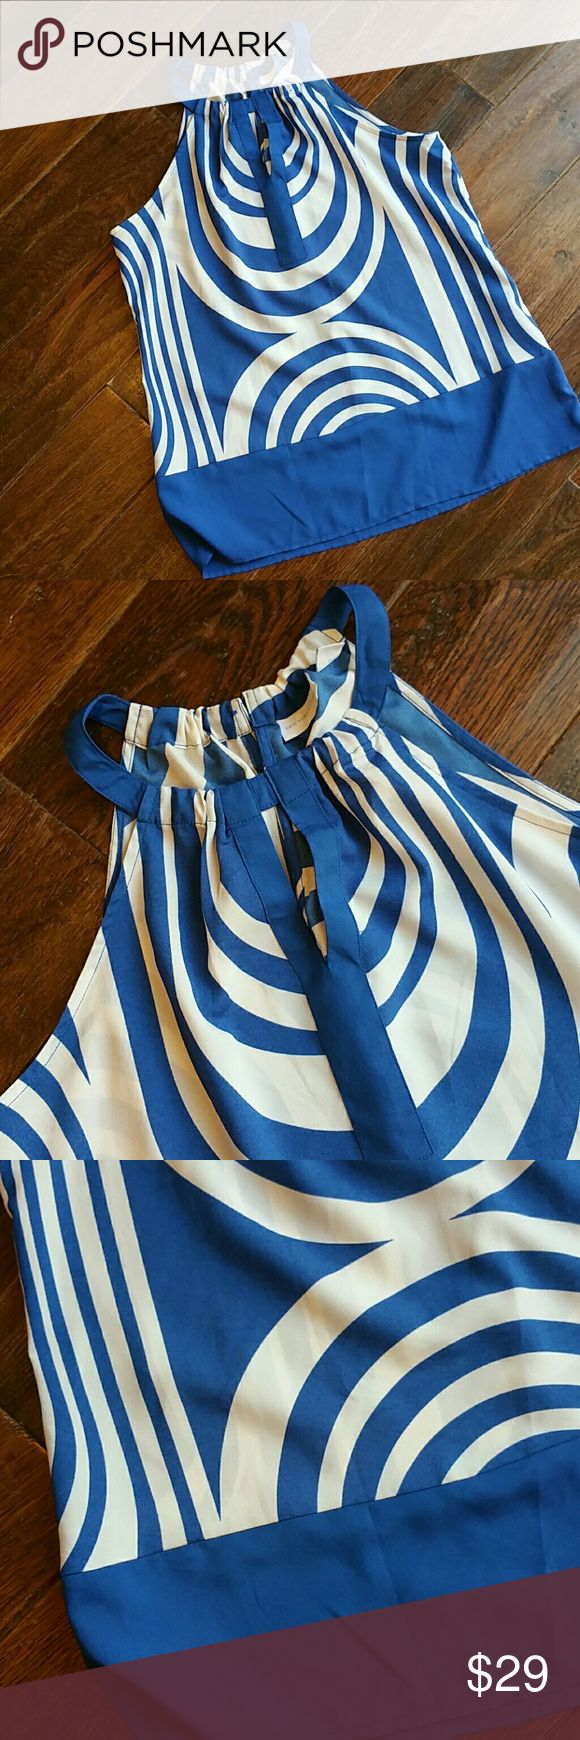 Blue and white blouse A pretty blue and white sleeves top great for dressing up or wear with jeans. Keyhole slit on the front and 2 button closure New York & Company Tops Blouses